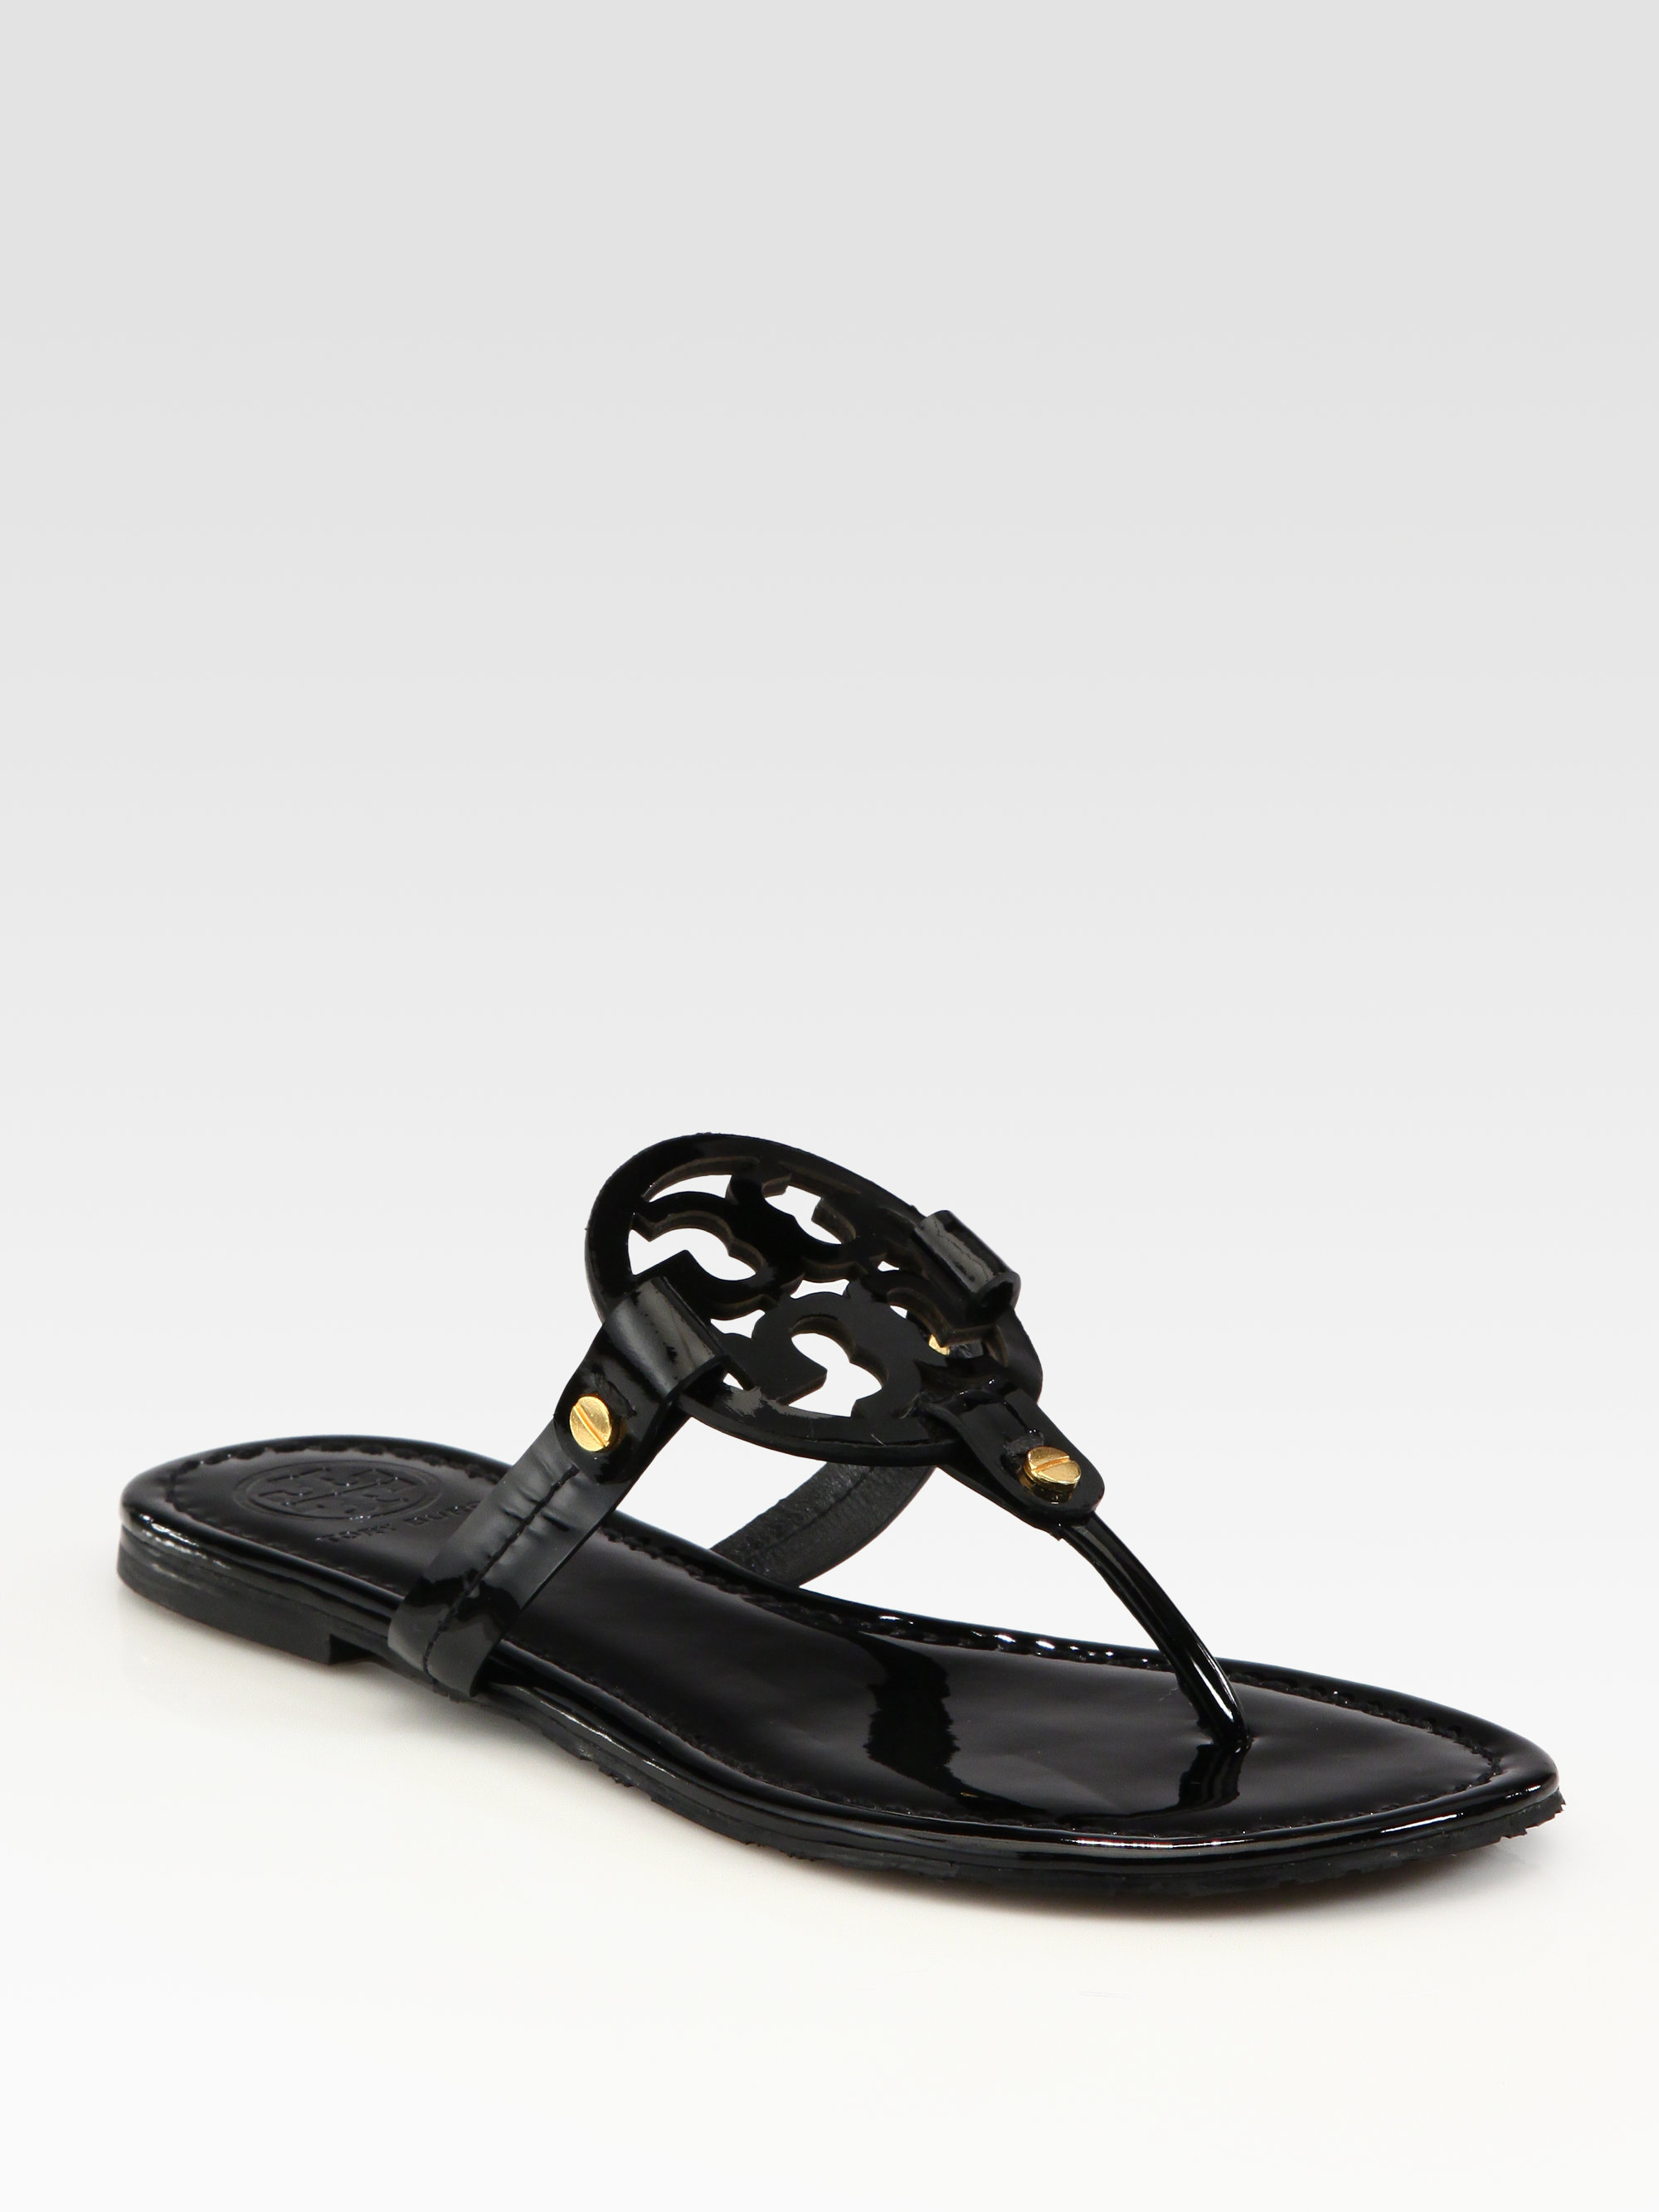 I bought these Jack Rogers sandals when they went on sale after pining for a pair for the longest time. Despite other reviews, I believe that the sandals fit true to size.